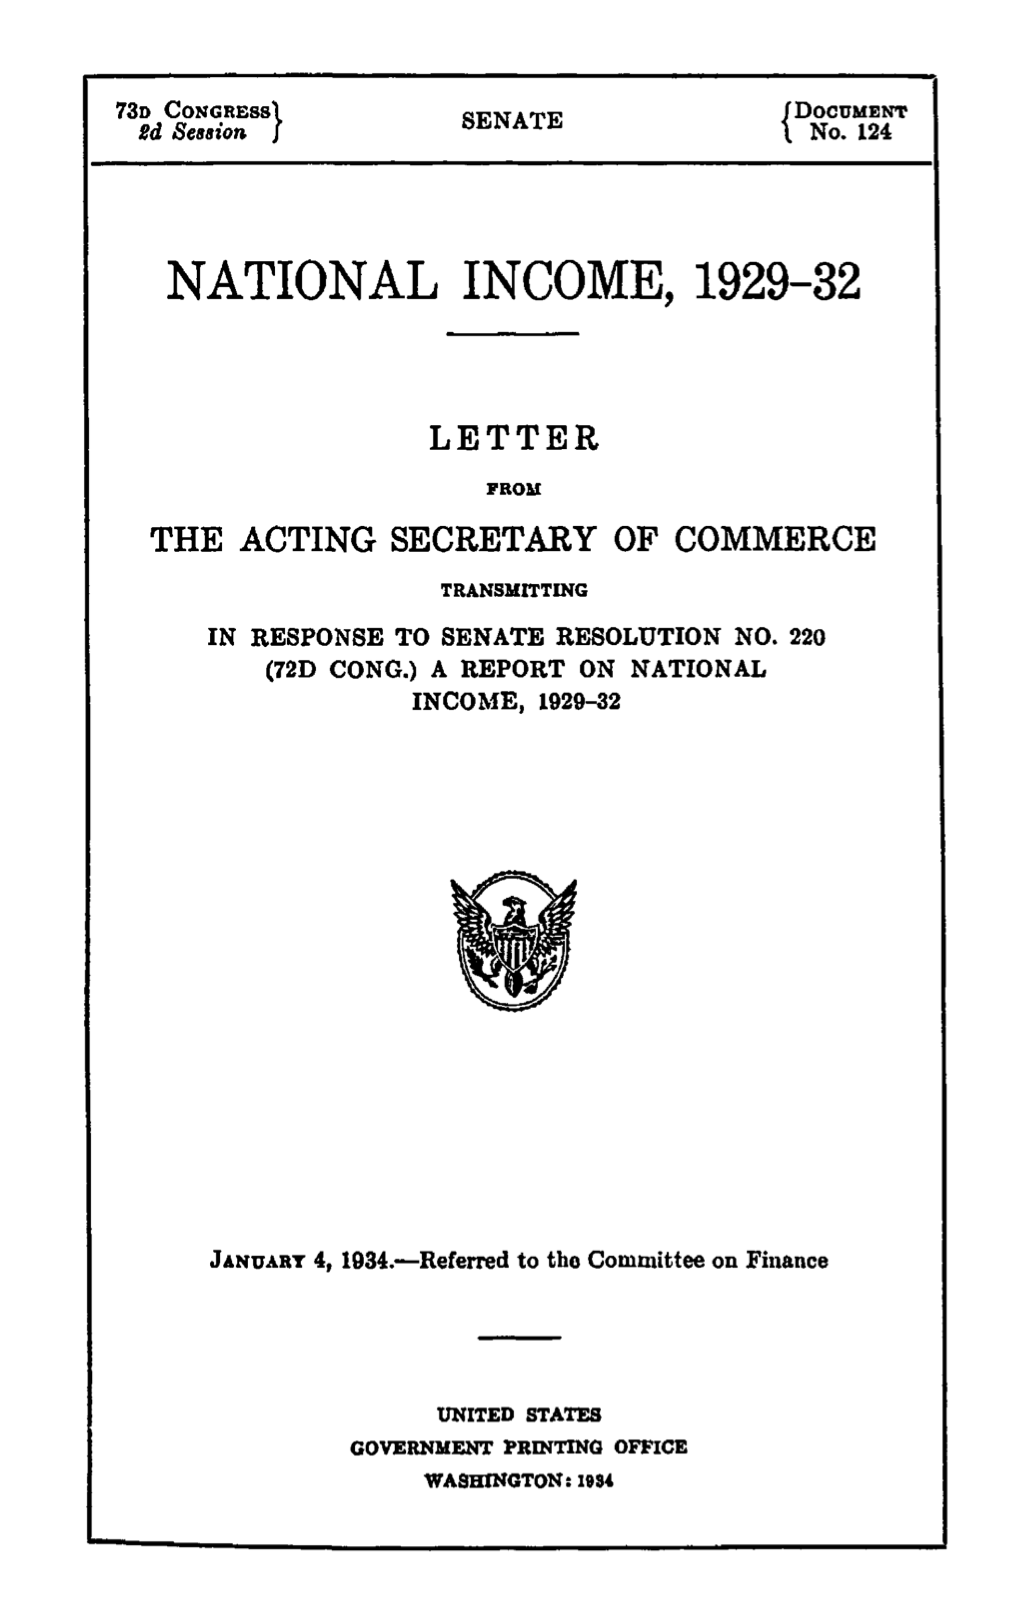 The first page of the document presented by Kuztnets to Congress